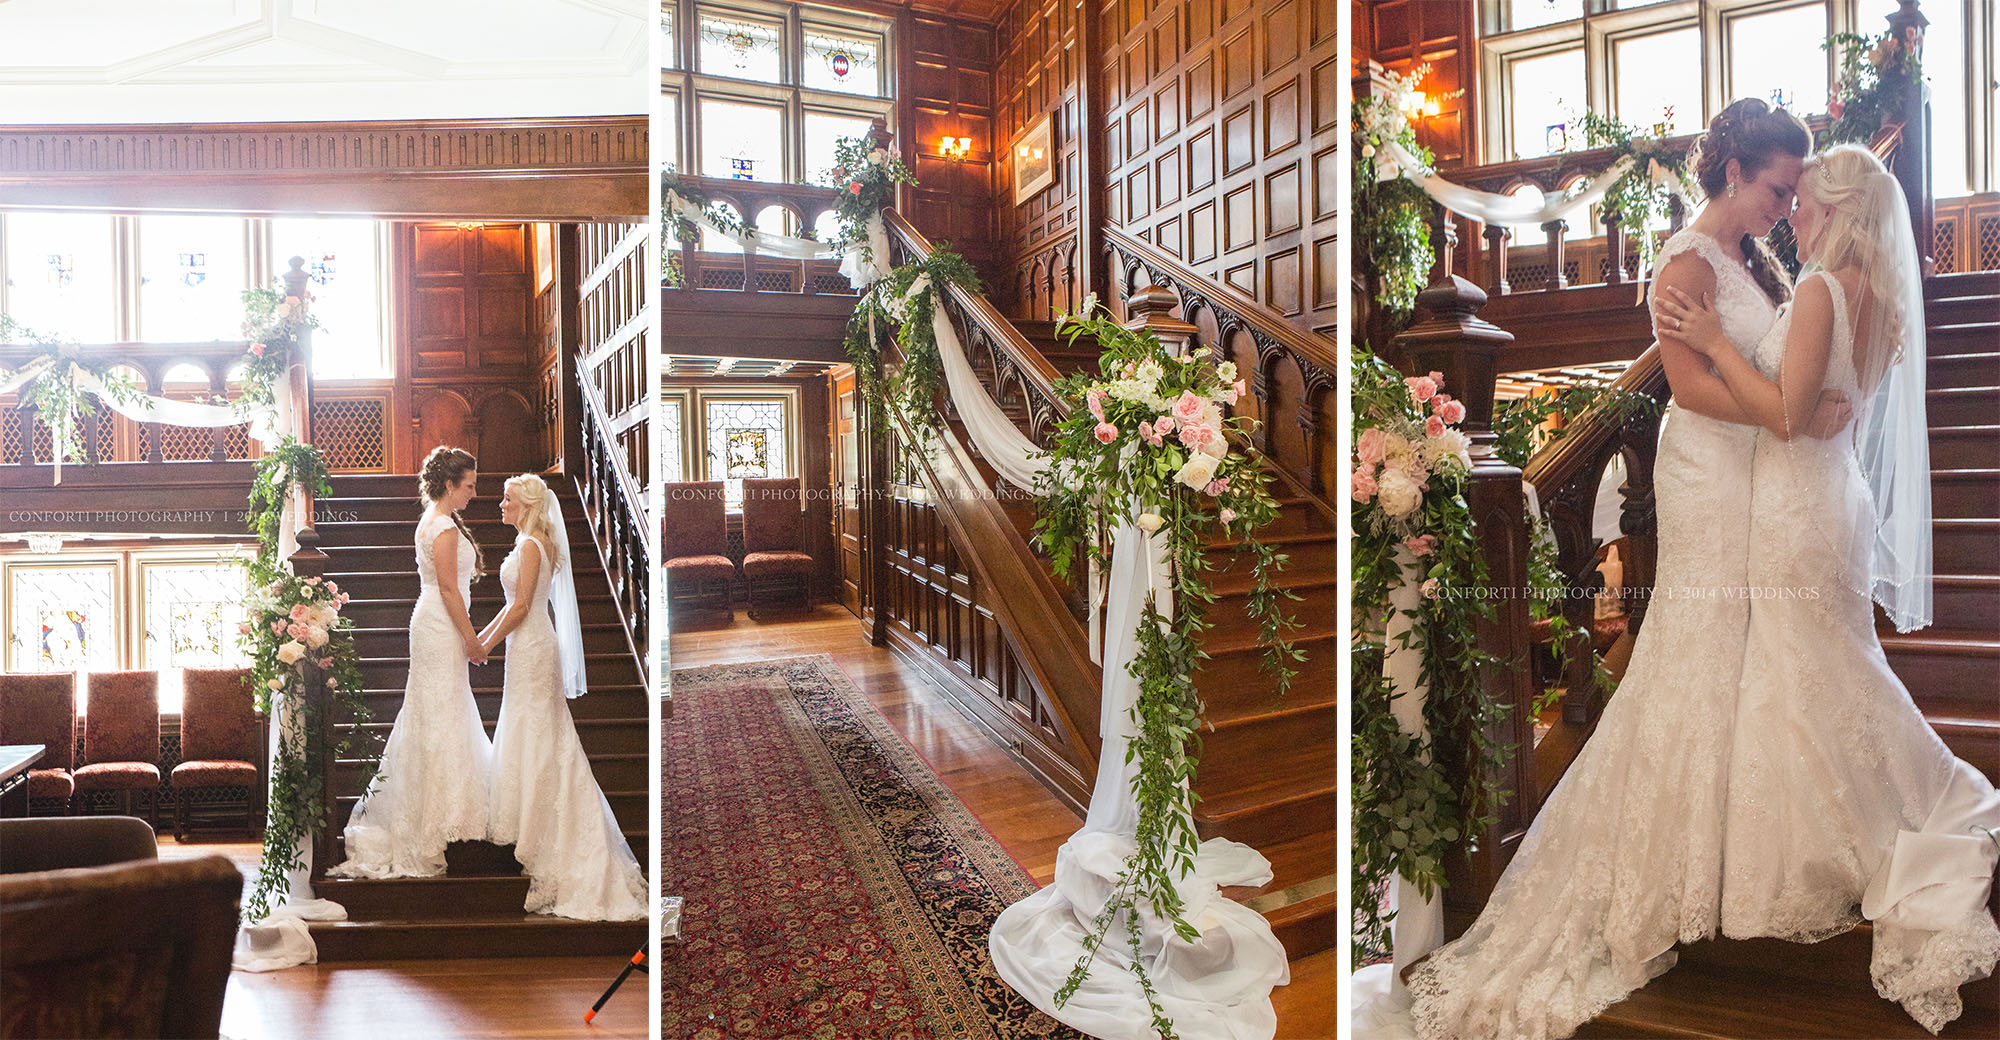 Their first look on the grand staircase brought us all to tears! So emotional and beautiful!